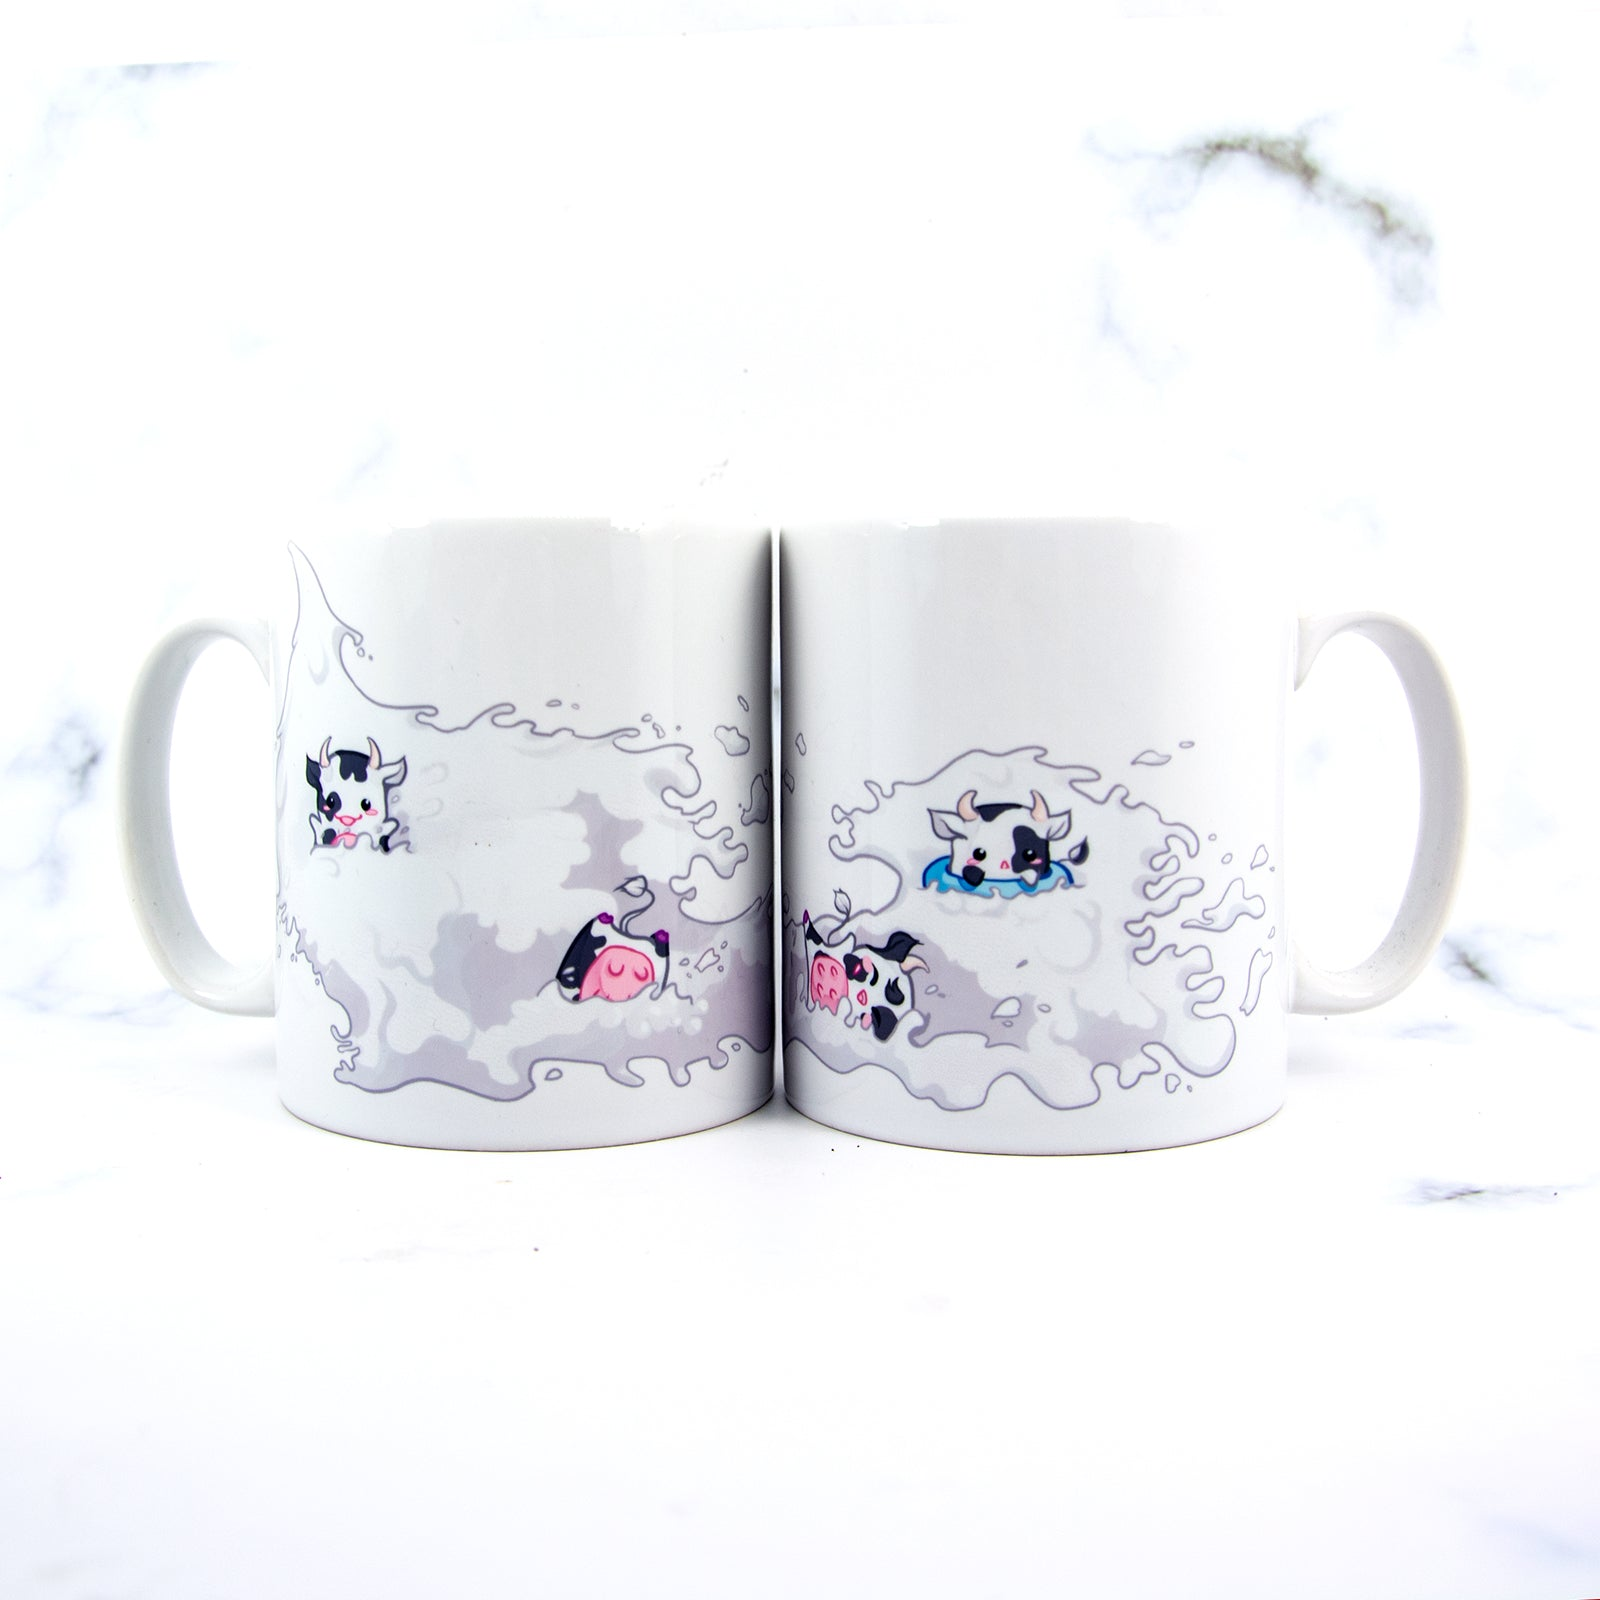 Kawaii chibi animal cow party mug - MadModesty